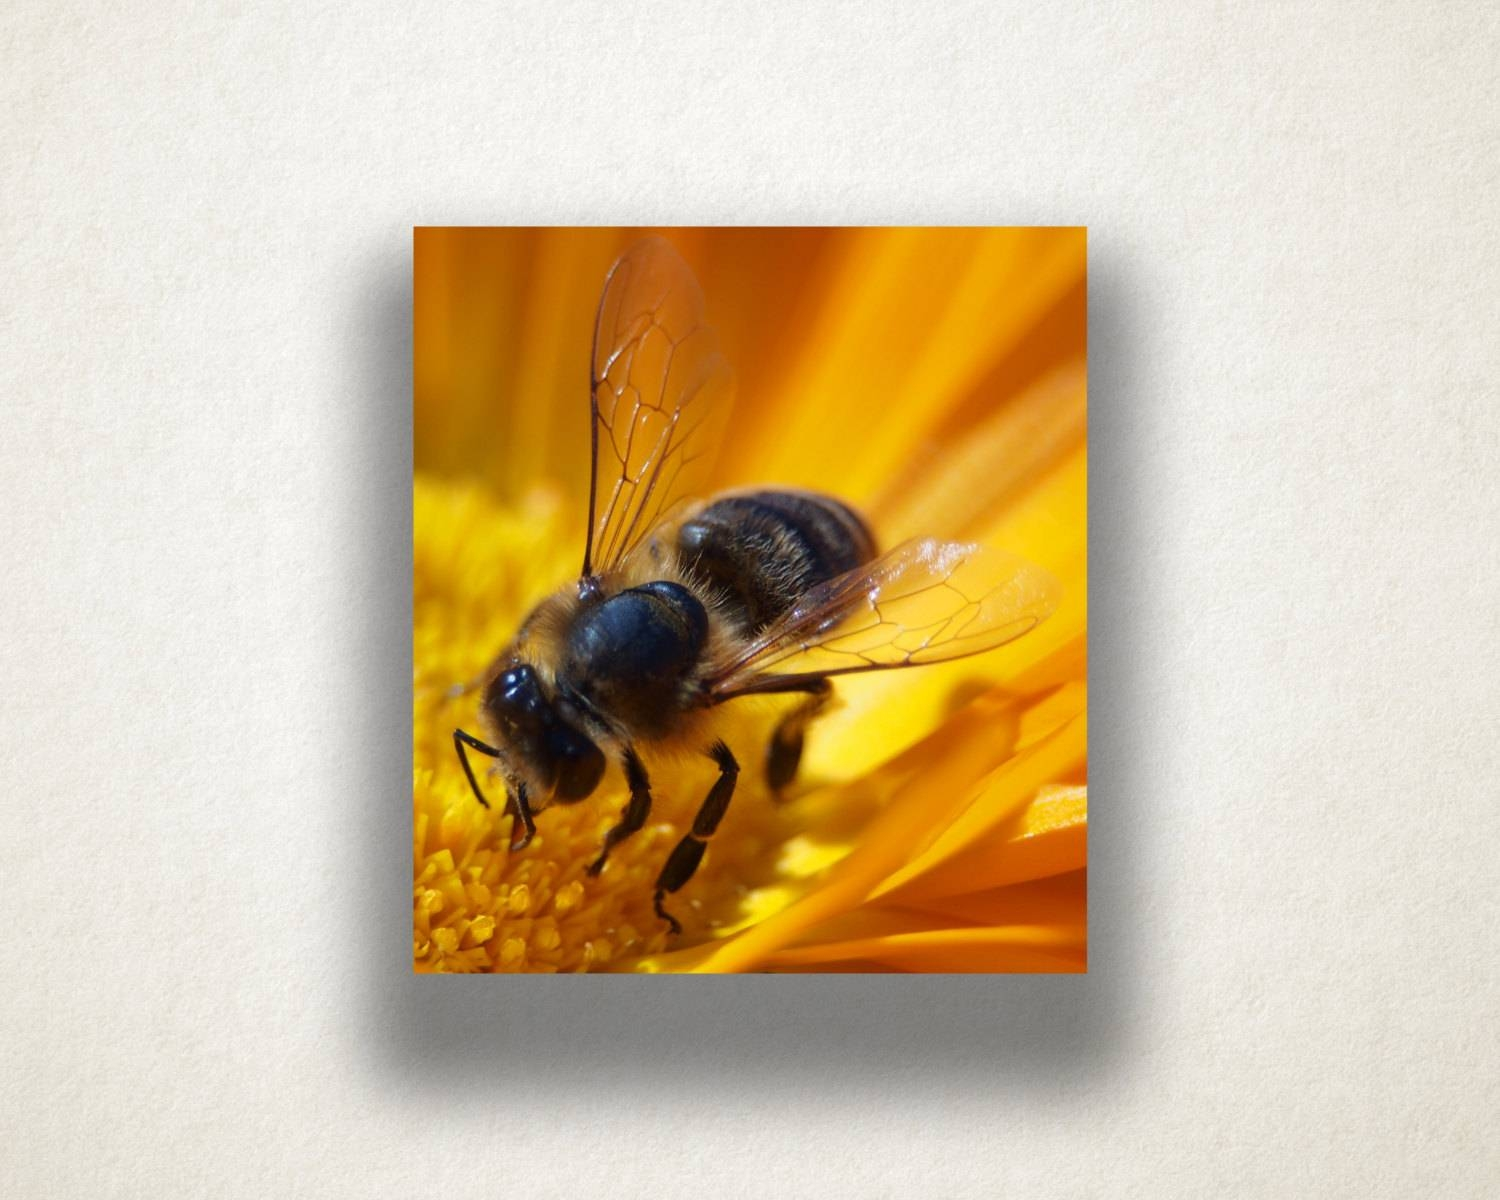 Flower And Bee Canvas Art, Bee Close Up Wall Art, Insect Canvas Throughout Most Recently Released Insect Wall Art (View 9 of 30)